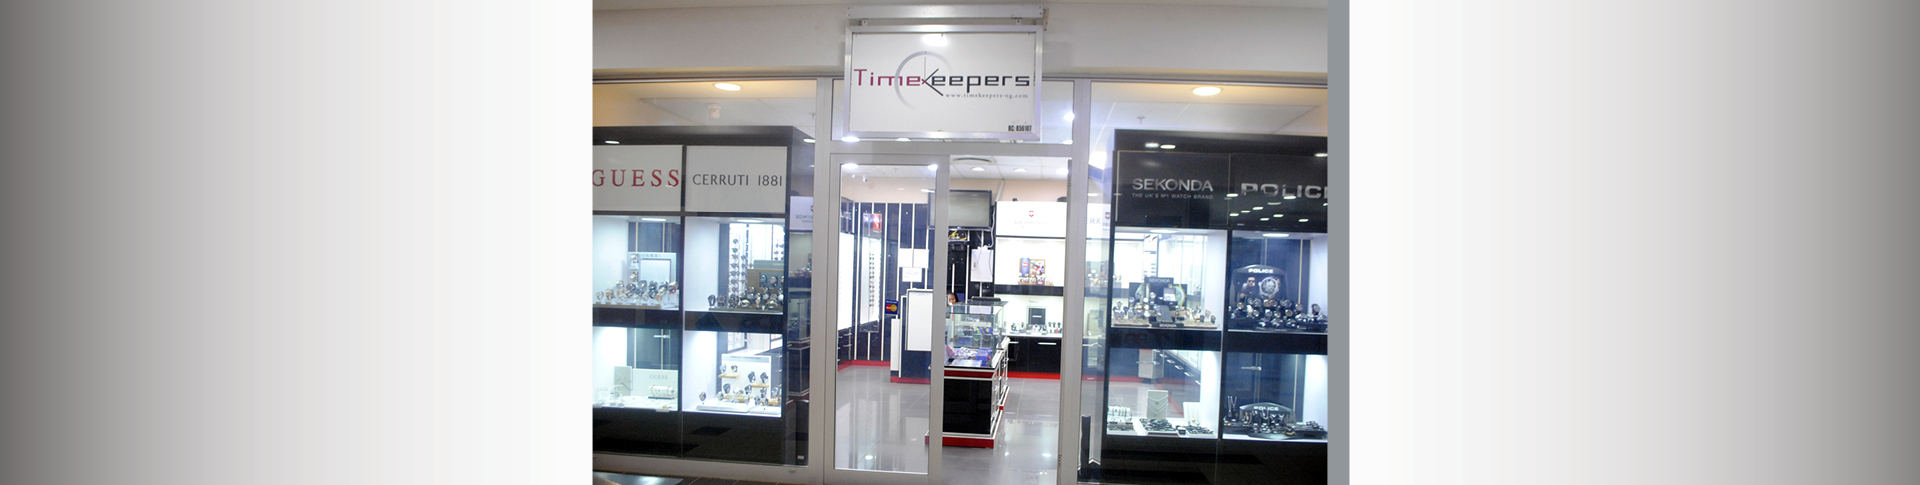 Time Keepers shop front